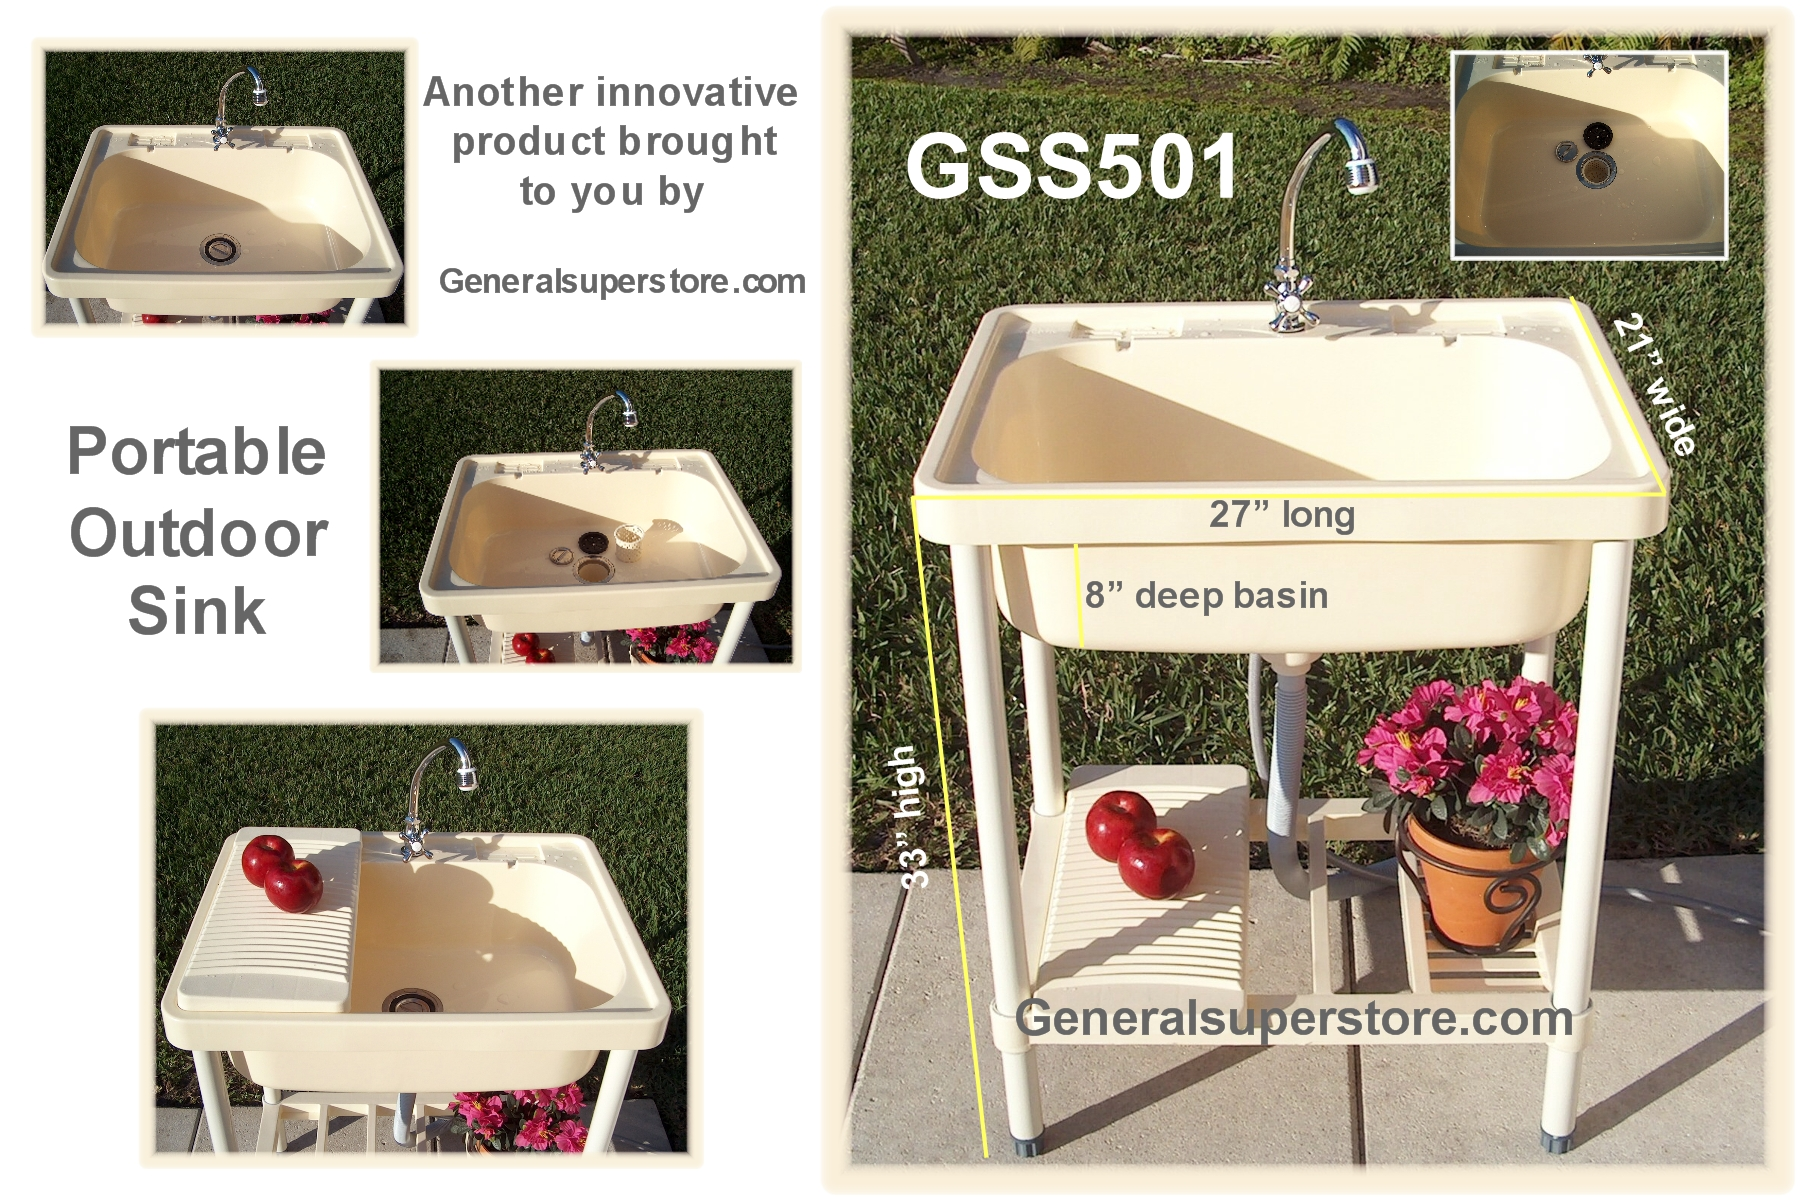 Camp Kitchen With Sink Australia Portable Camping Diy Working Uk And Faucet Unit Table Nz Bcf Tap Au Outdoor Deluxe Pvc Drain Gss501 Garden Rv Sleeping Pad Air Gear Expocafeperu Com